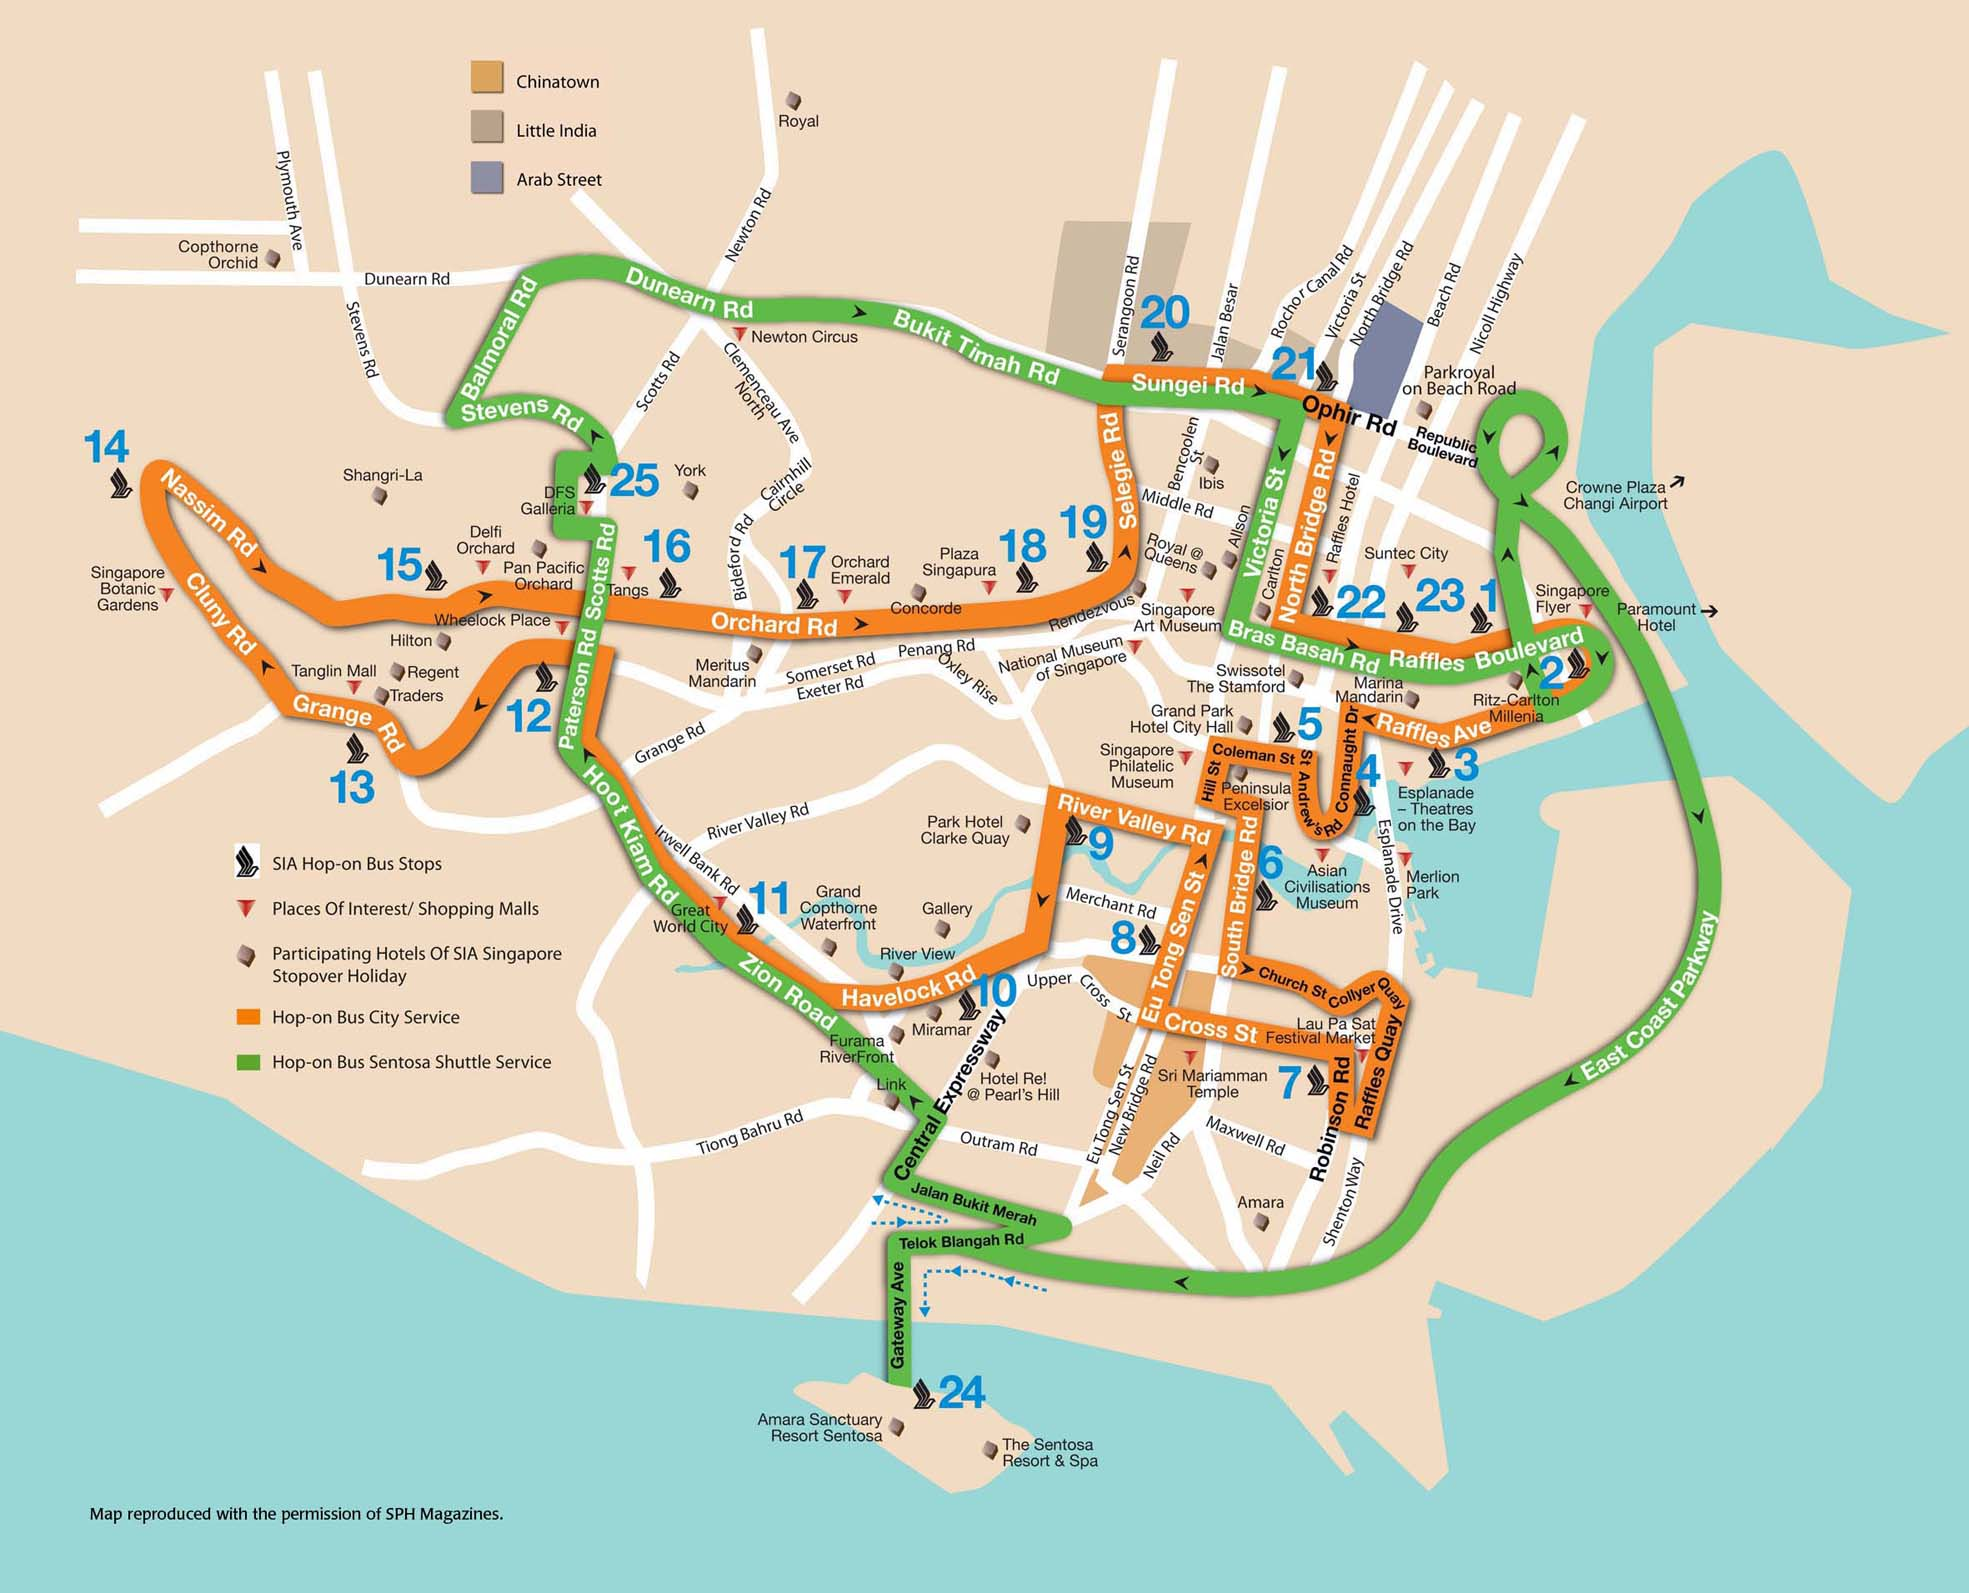 Singapore Tour Bus Map Singapore mappery – Singapore Tourist Map